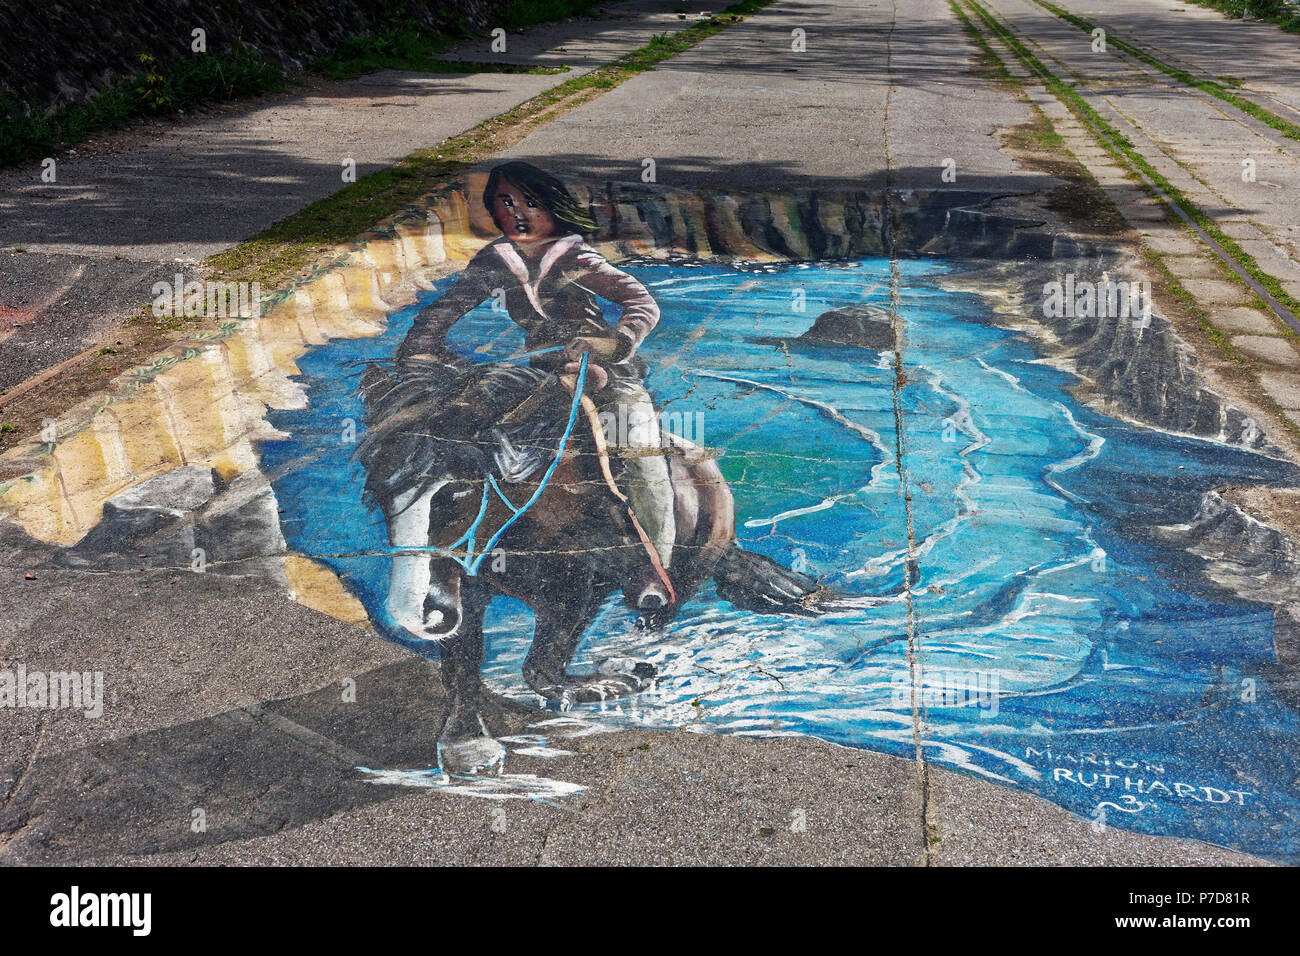 Horse-rider emerging from the sea, 3-D painting on the asphalt, by Marion Ruthardt, Rhine Side Gallery Uerdingen, Krefeld, NRW - Stock Image